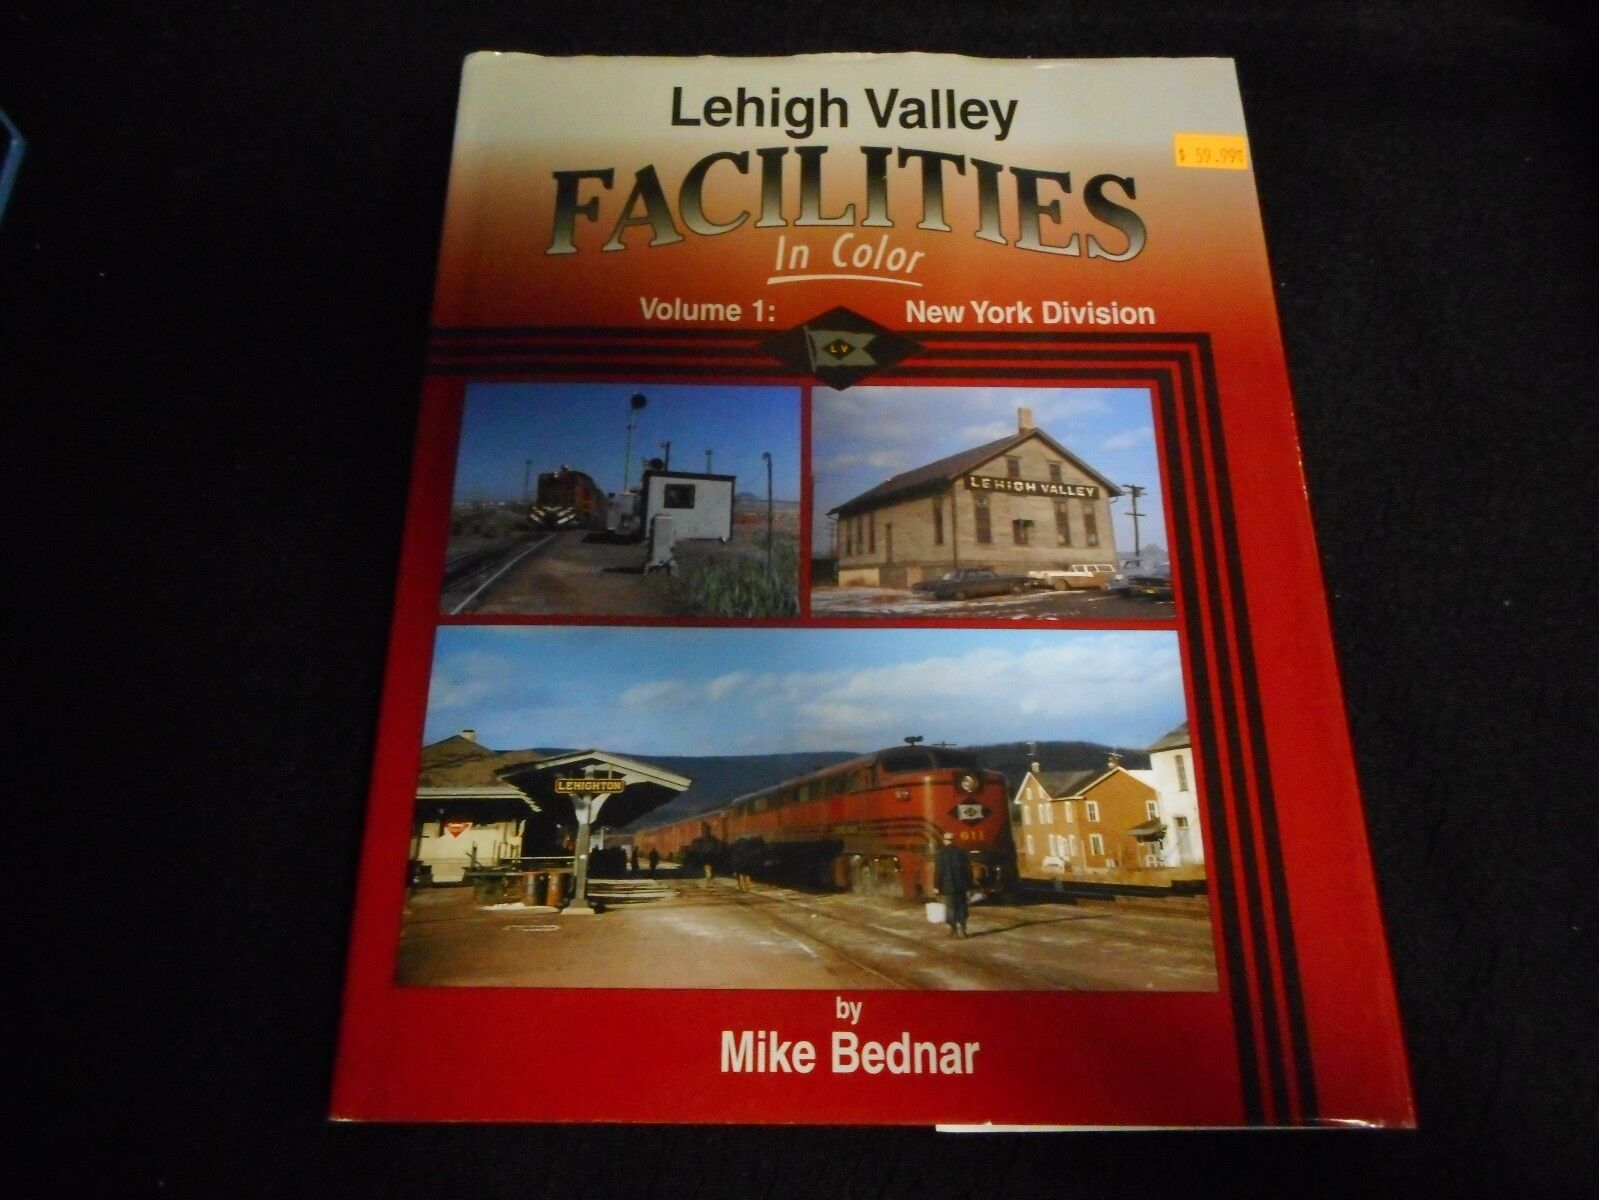 LeHigh Valley Facilities In color - Volume 1  New York Division by Mike Bednar